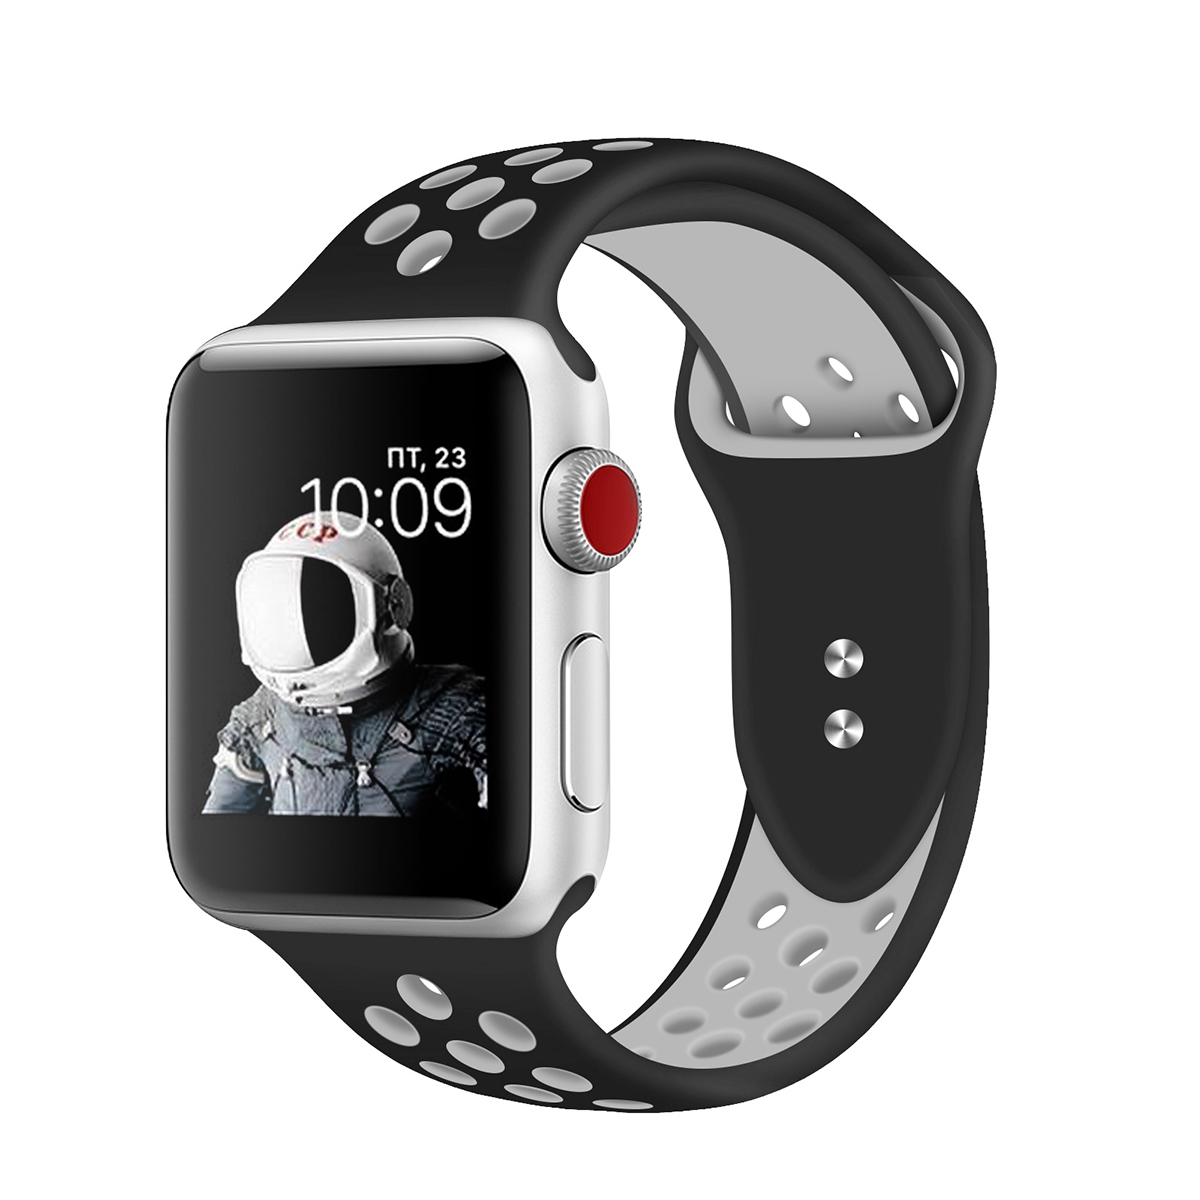 Promate Silicone Apple Watch 38mm/40mm Strap,  Dual-Toned Silicone Sport Band w/ Lock Pin  for Apple Series 1/2/3/4 Small/ M/L/S, Nike+, Sports - B/W